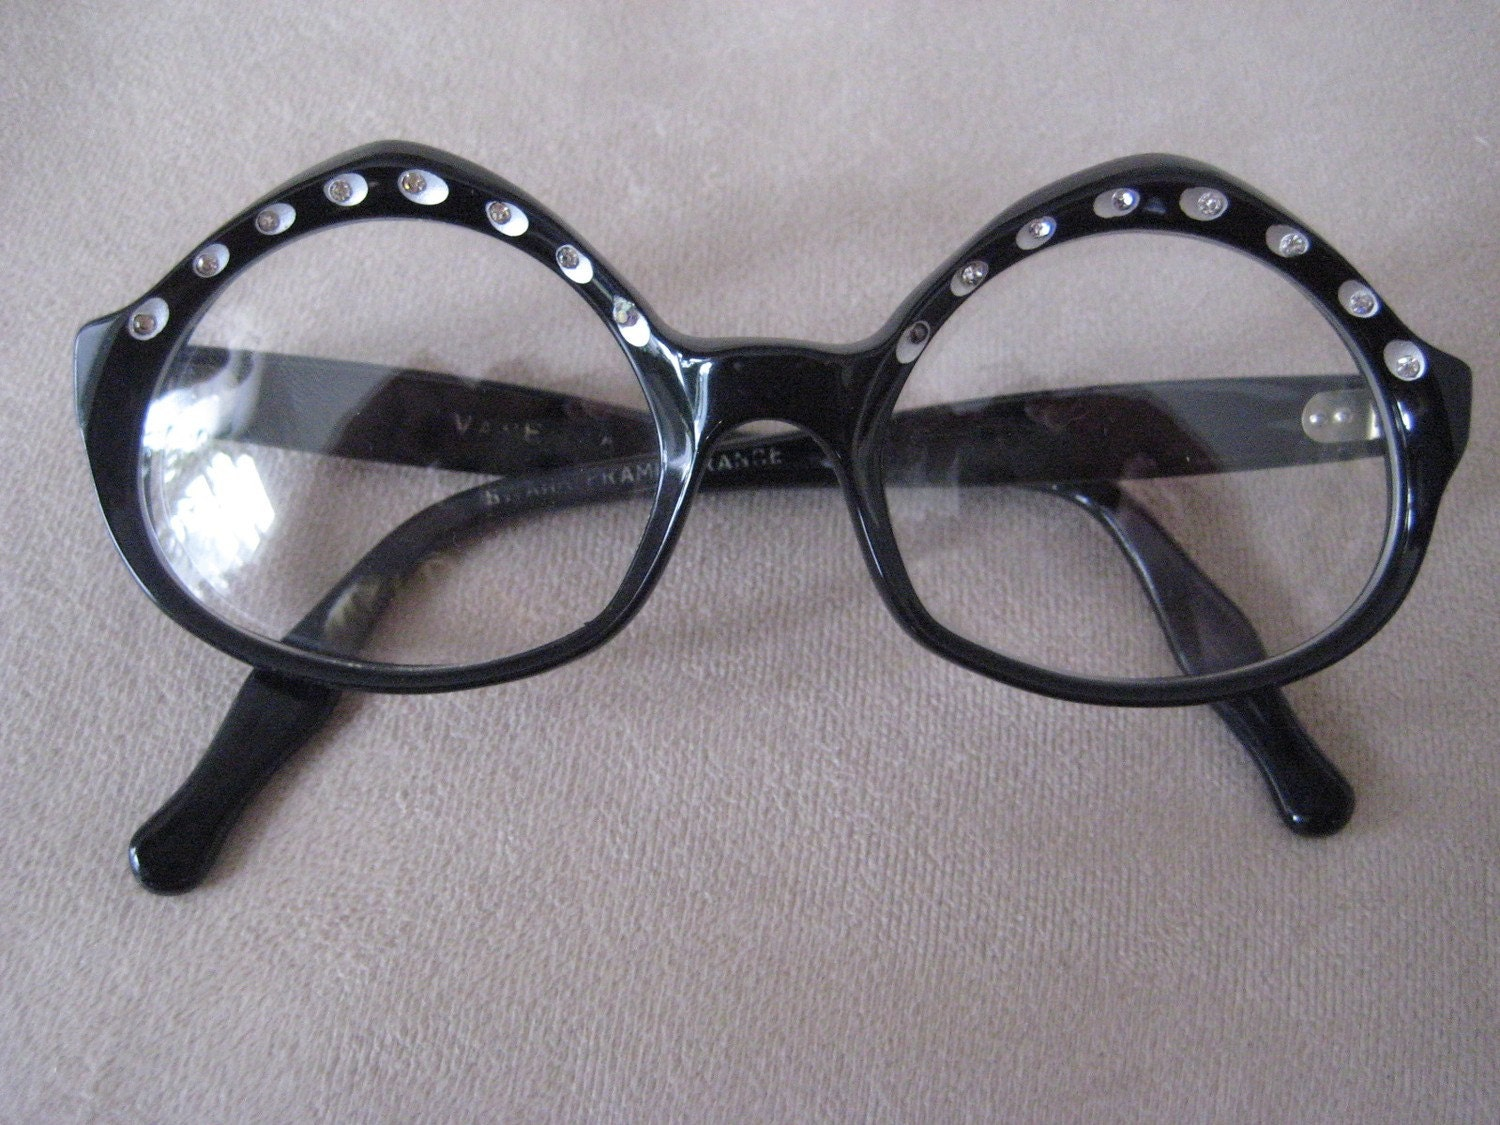 swank unique eyeglasses or sunglasses frames black by atrickey